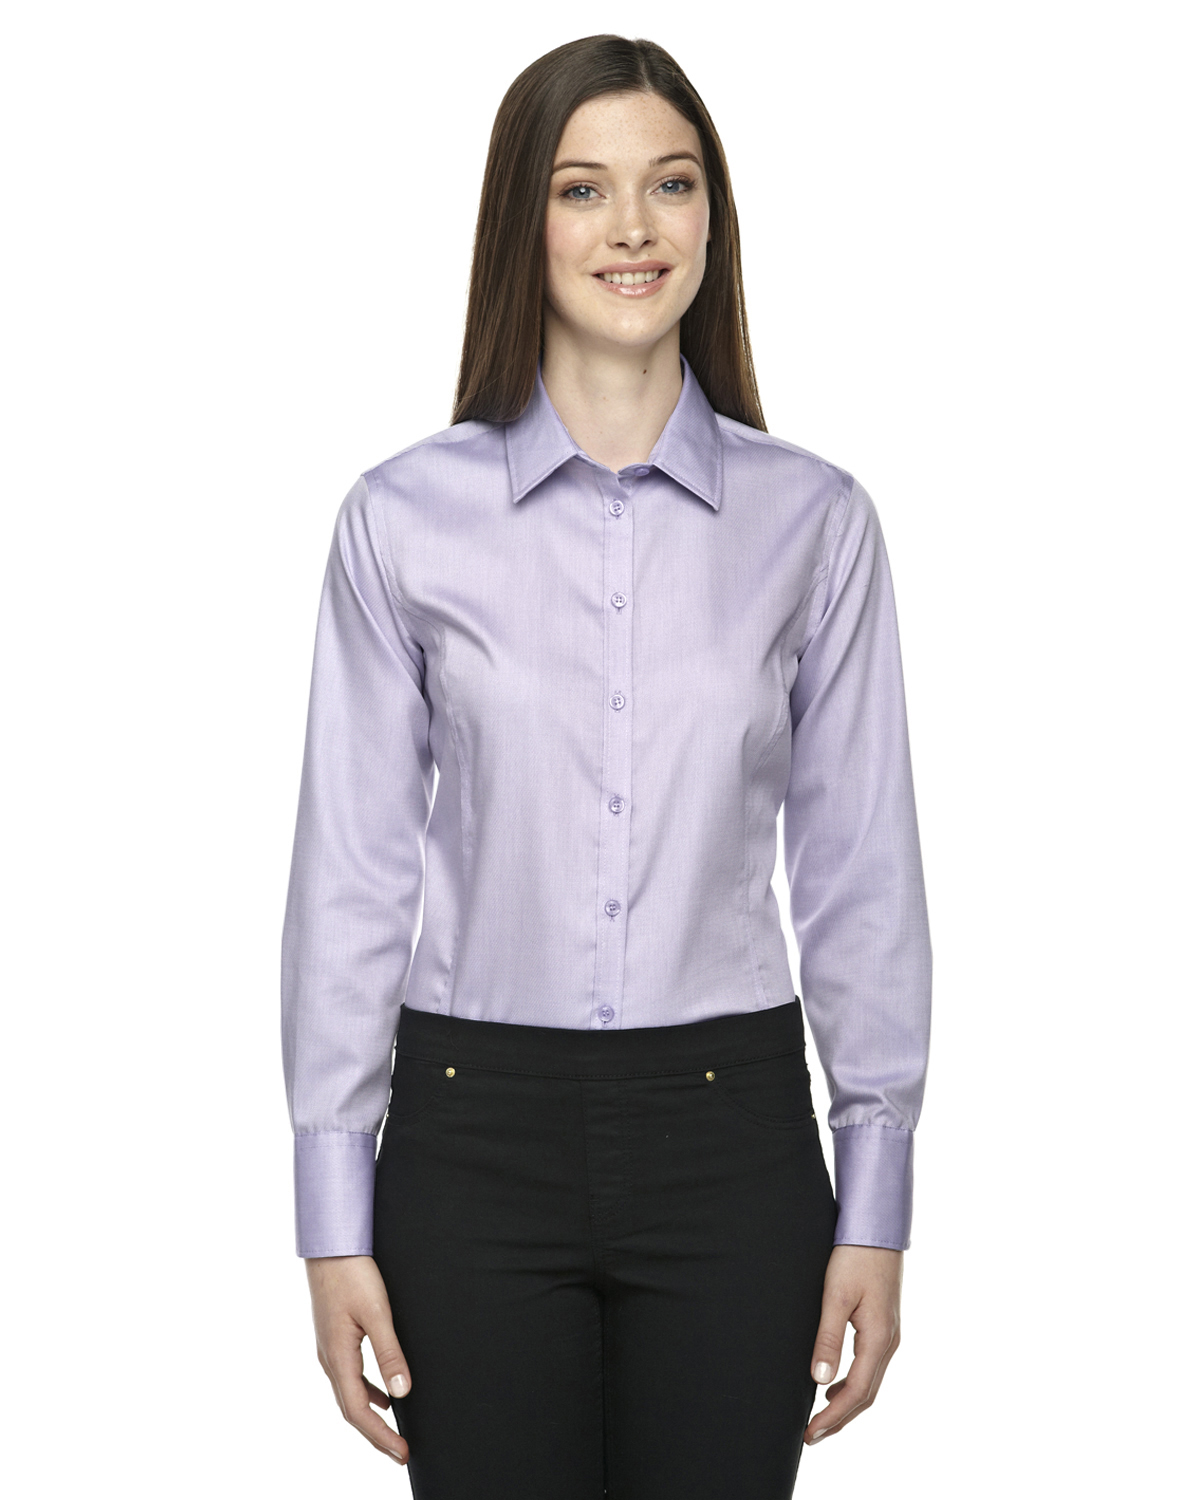 Find Casual Women's Oxford Shirts and Dressy Women's Oxford Shirts at Macy's. Macy's Presents: The Edit - A curated mix of fashion and inspiration Check It Out Free Shipping with $49 purchase + .